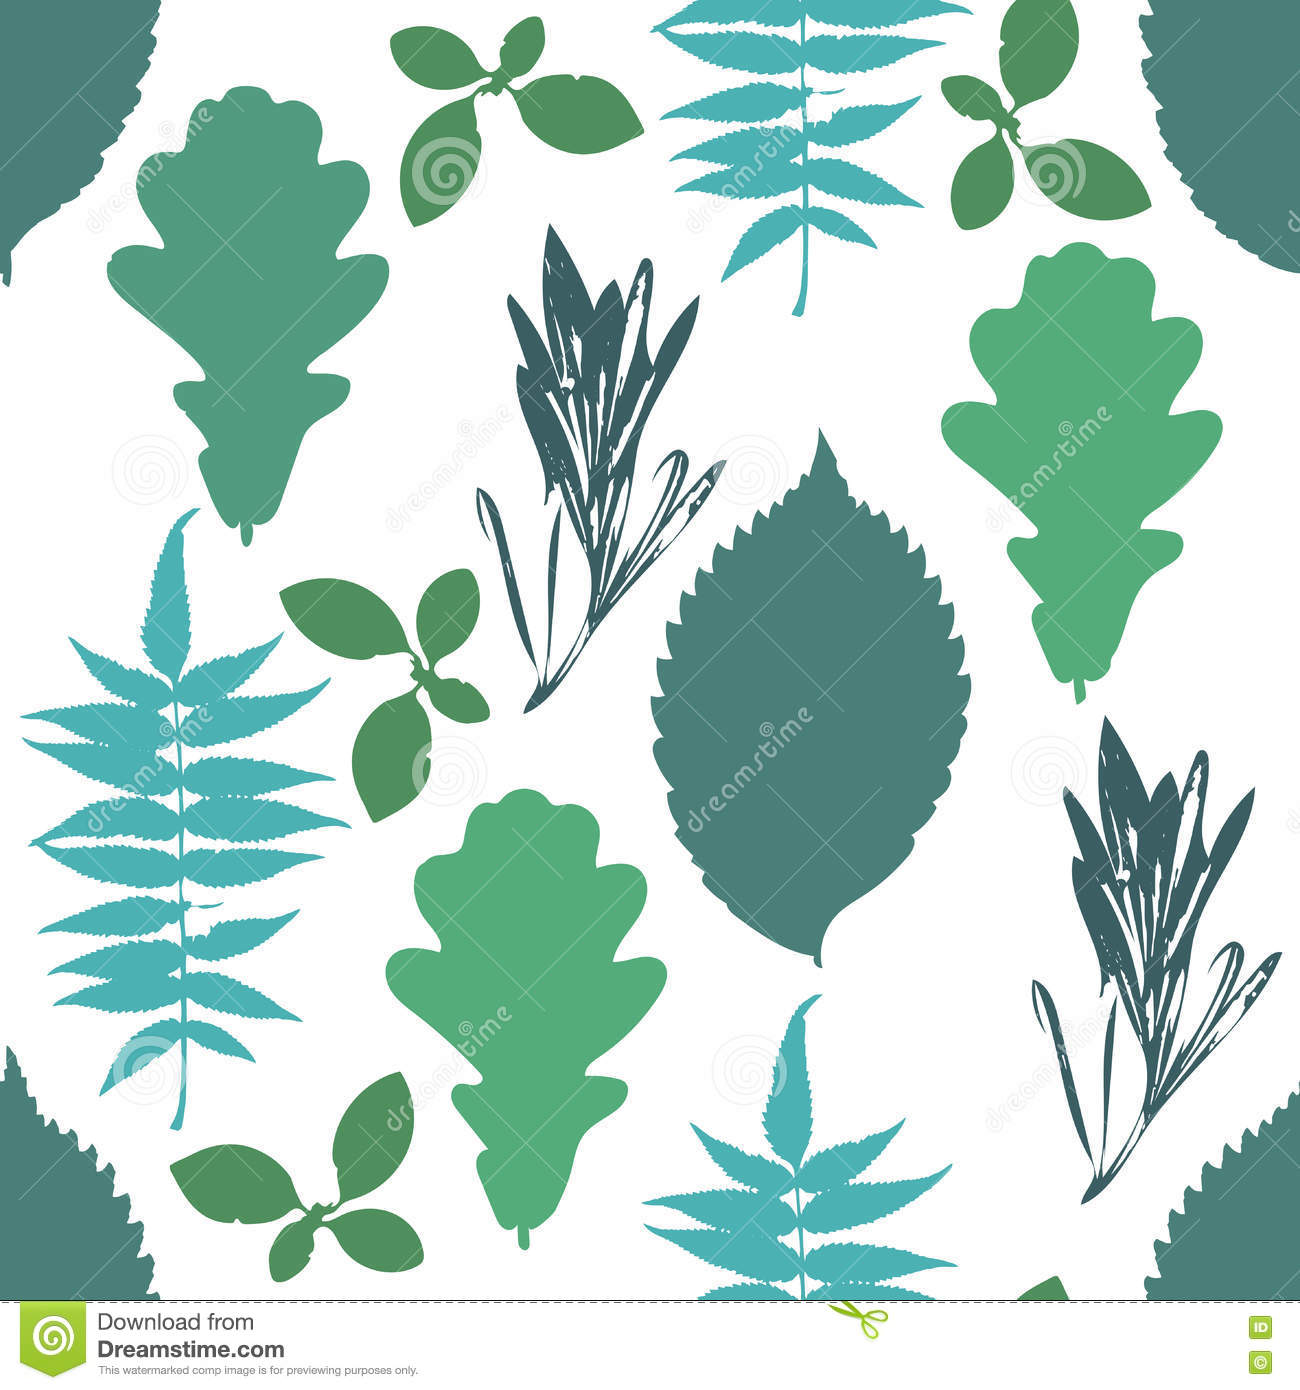 Floral seamless pattern with autumn grunge blue, green tree leaves on white background.